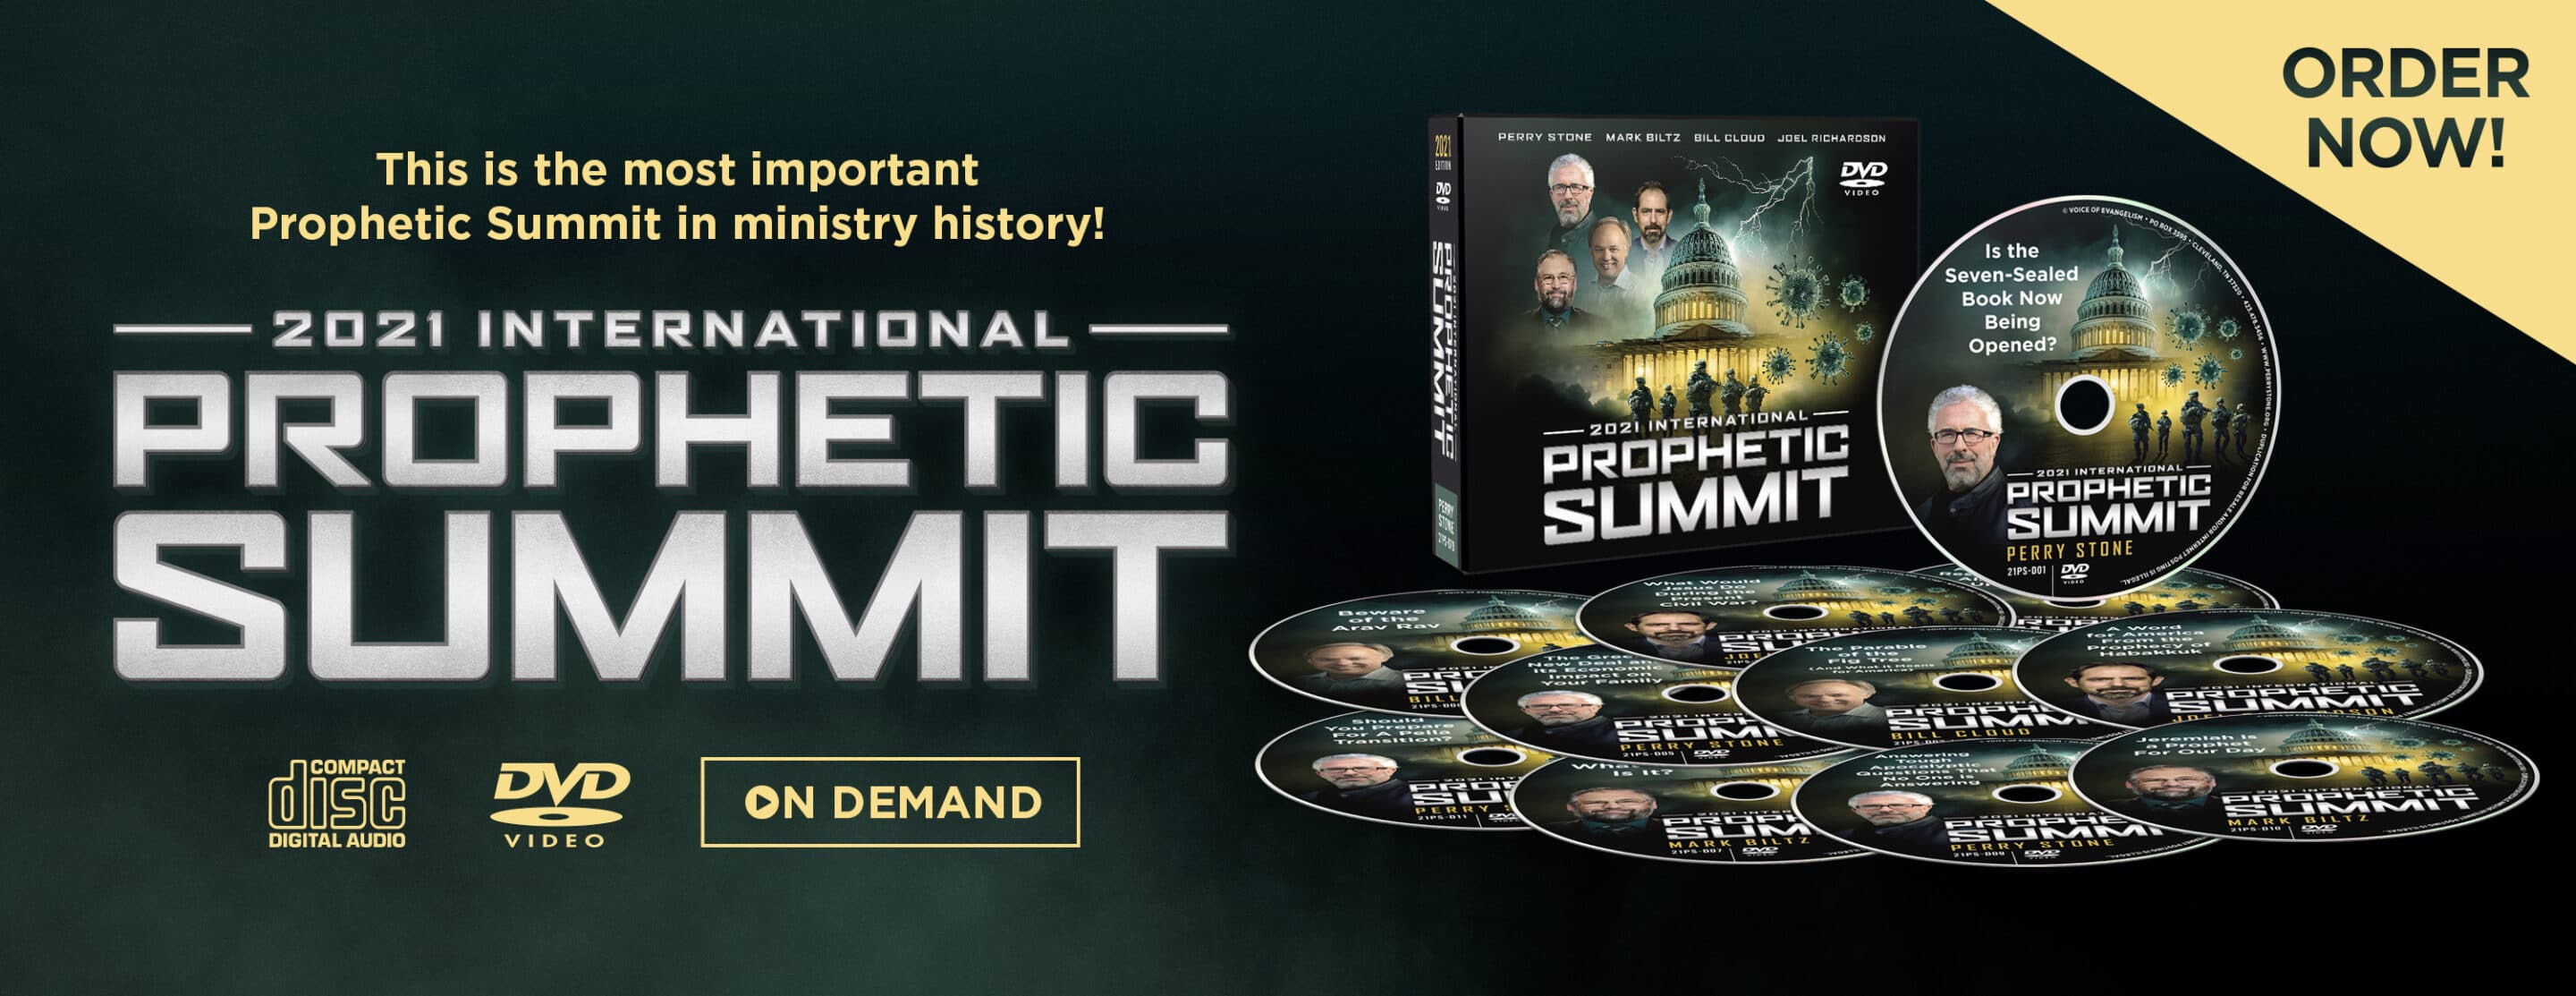 2021 Prophetic Summit Products – Website Banner